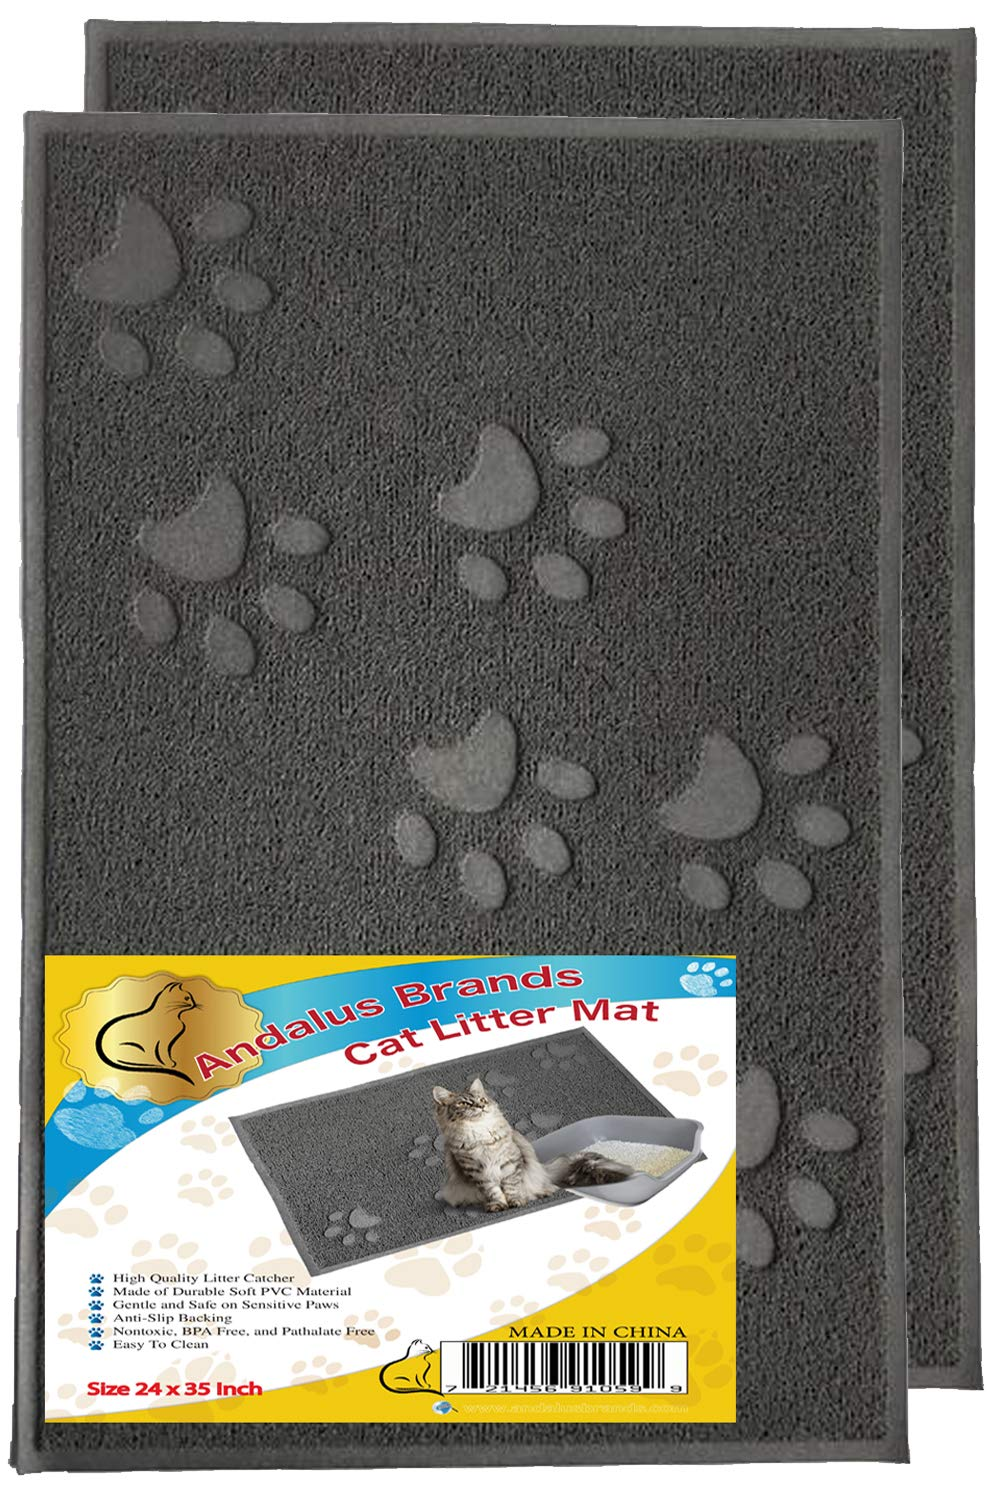 ANDALUS Cat Litter Mat, Gray, X-Large (35'' x 24''), 2 Pack by Andalus Brands